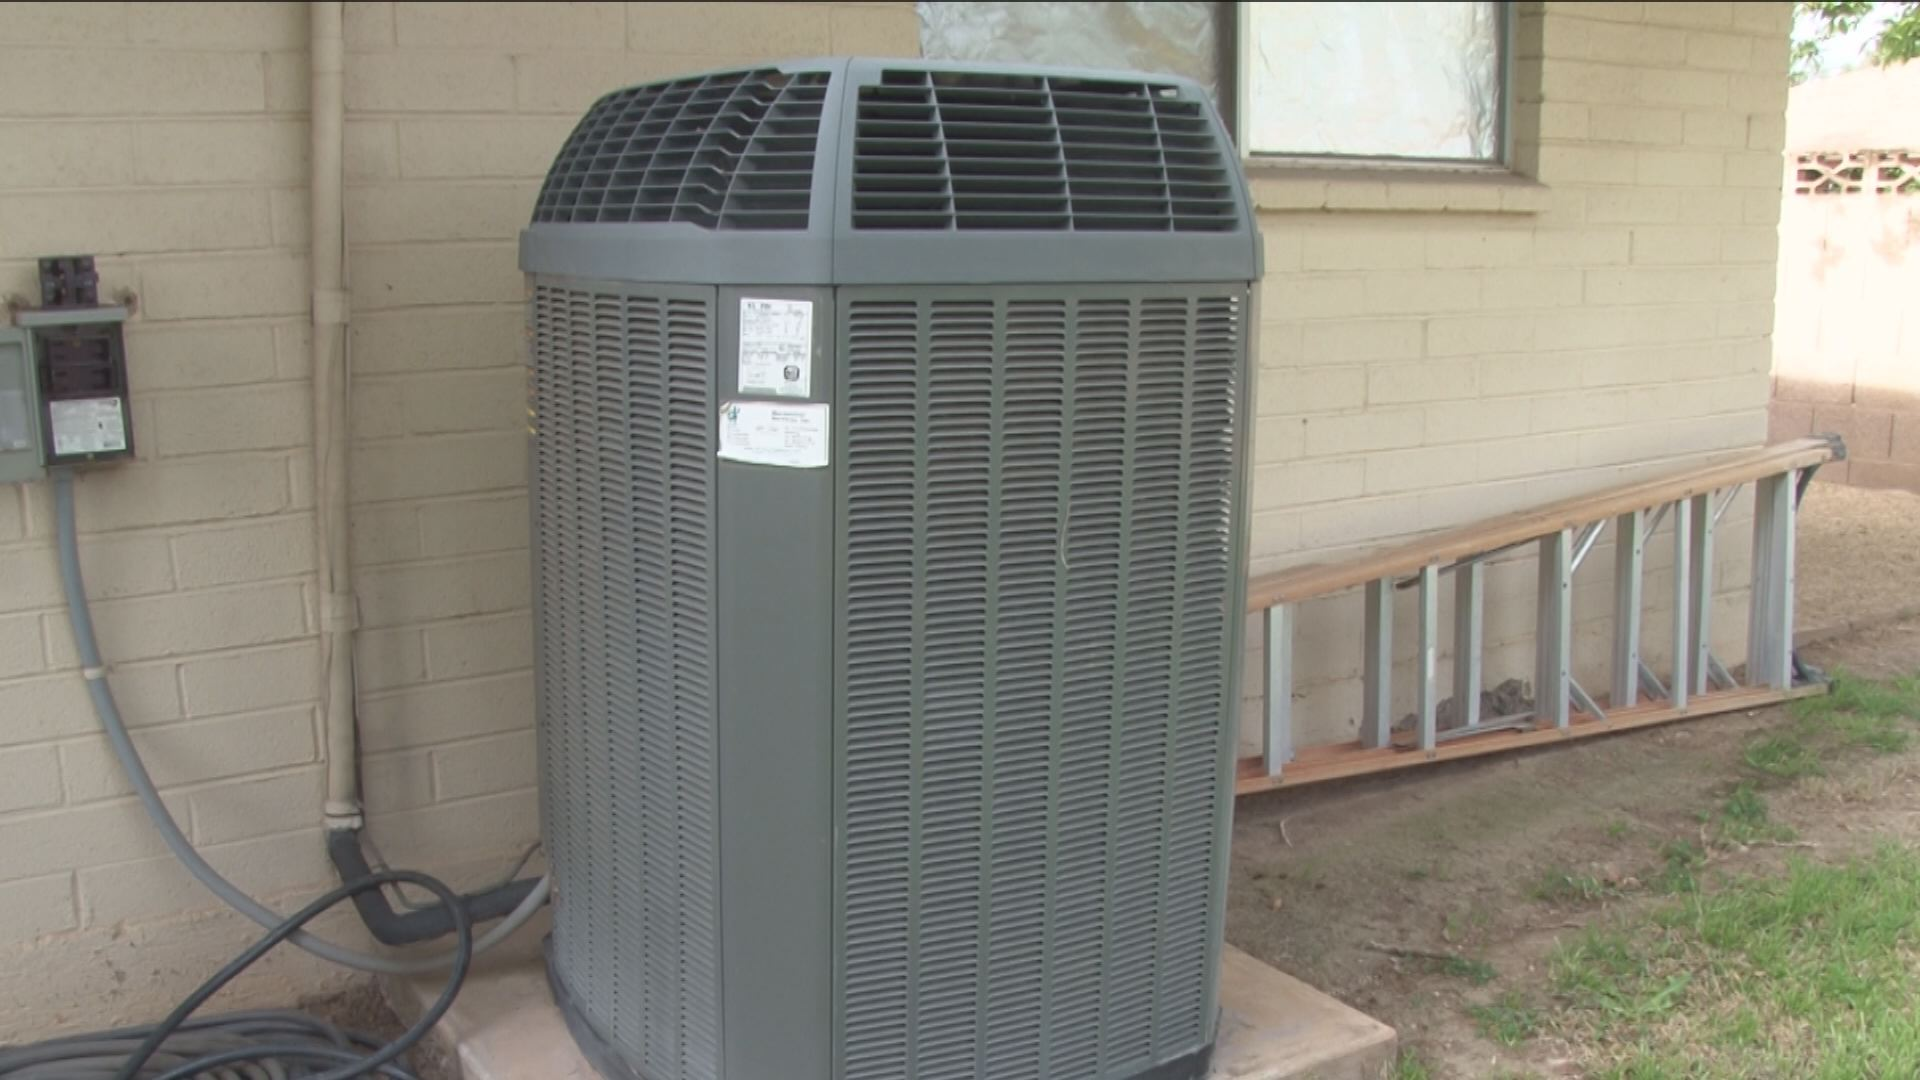 Verify Do You Have To Buy A New Air Conditioner By 2020